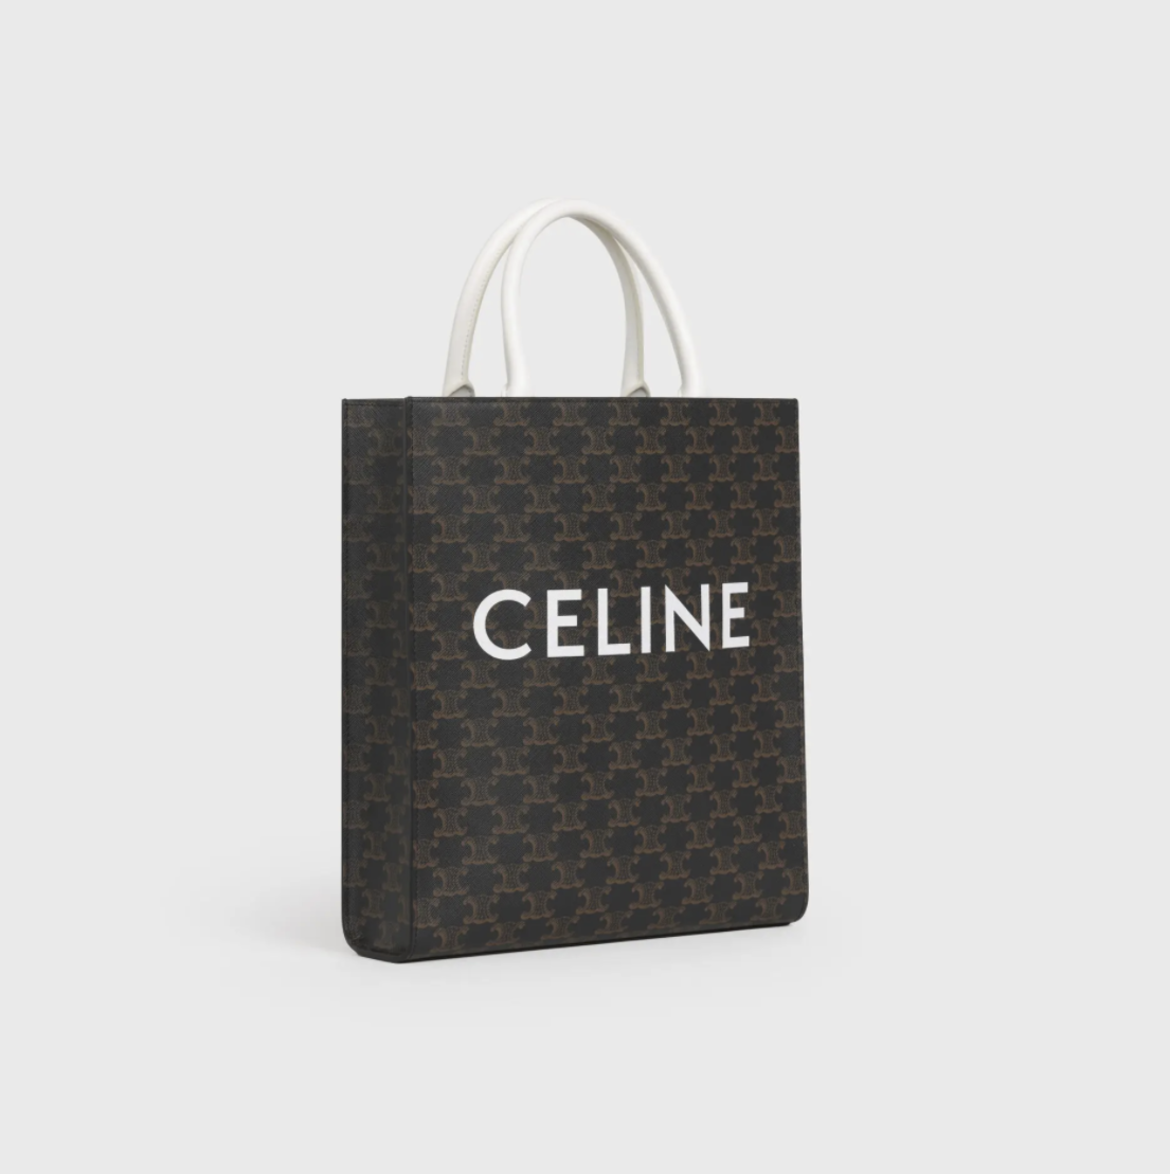 CELINE Small Vertical Cabas in Triomphere Canvas HK$11,000